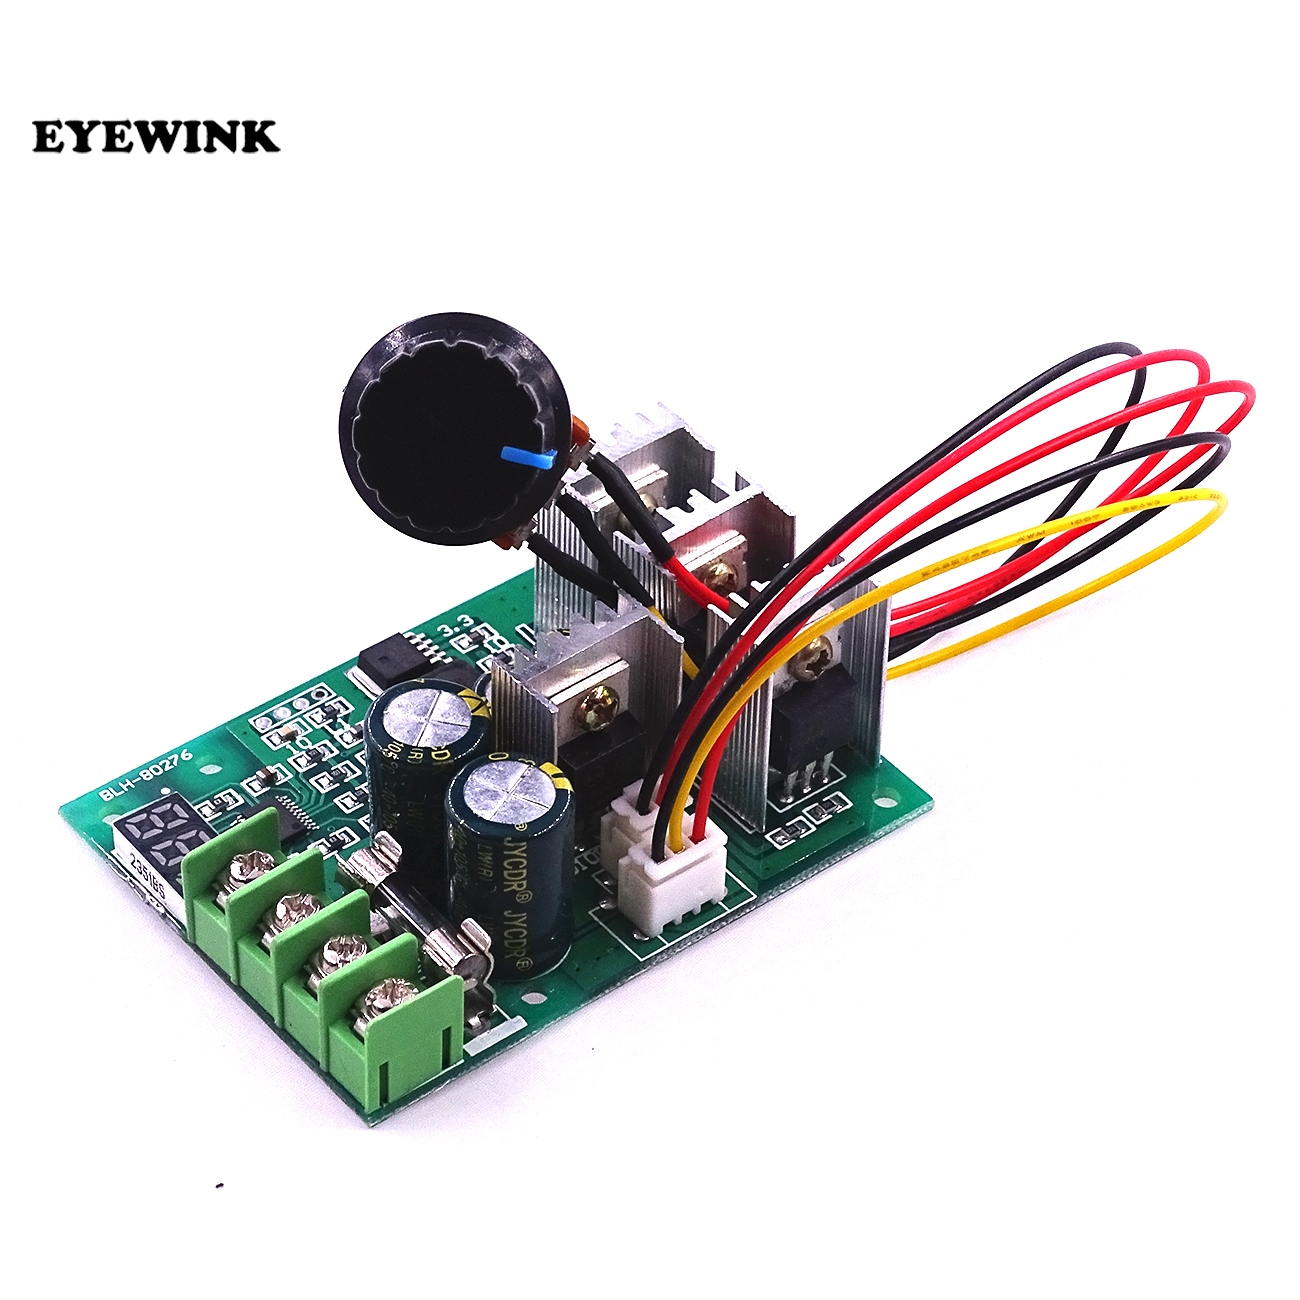 Electronic Components & Supplies Dedicated Eyewink 5set Dc Motor Speed Controller Digital Display 0~100% Adjustable Drive Module 6v~60v Input Max30a